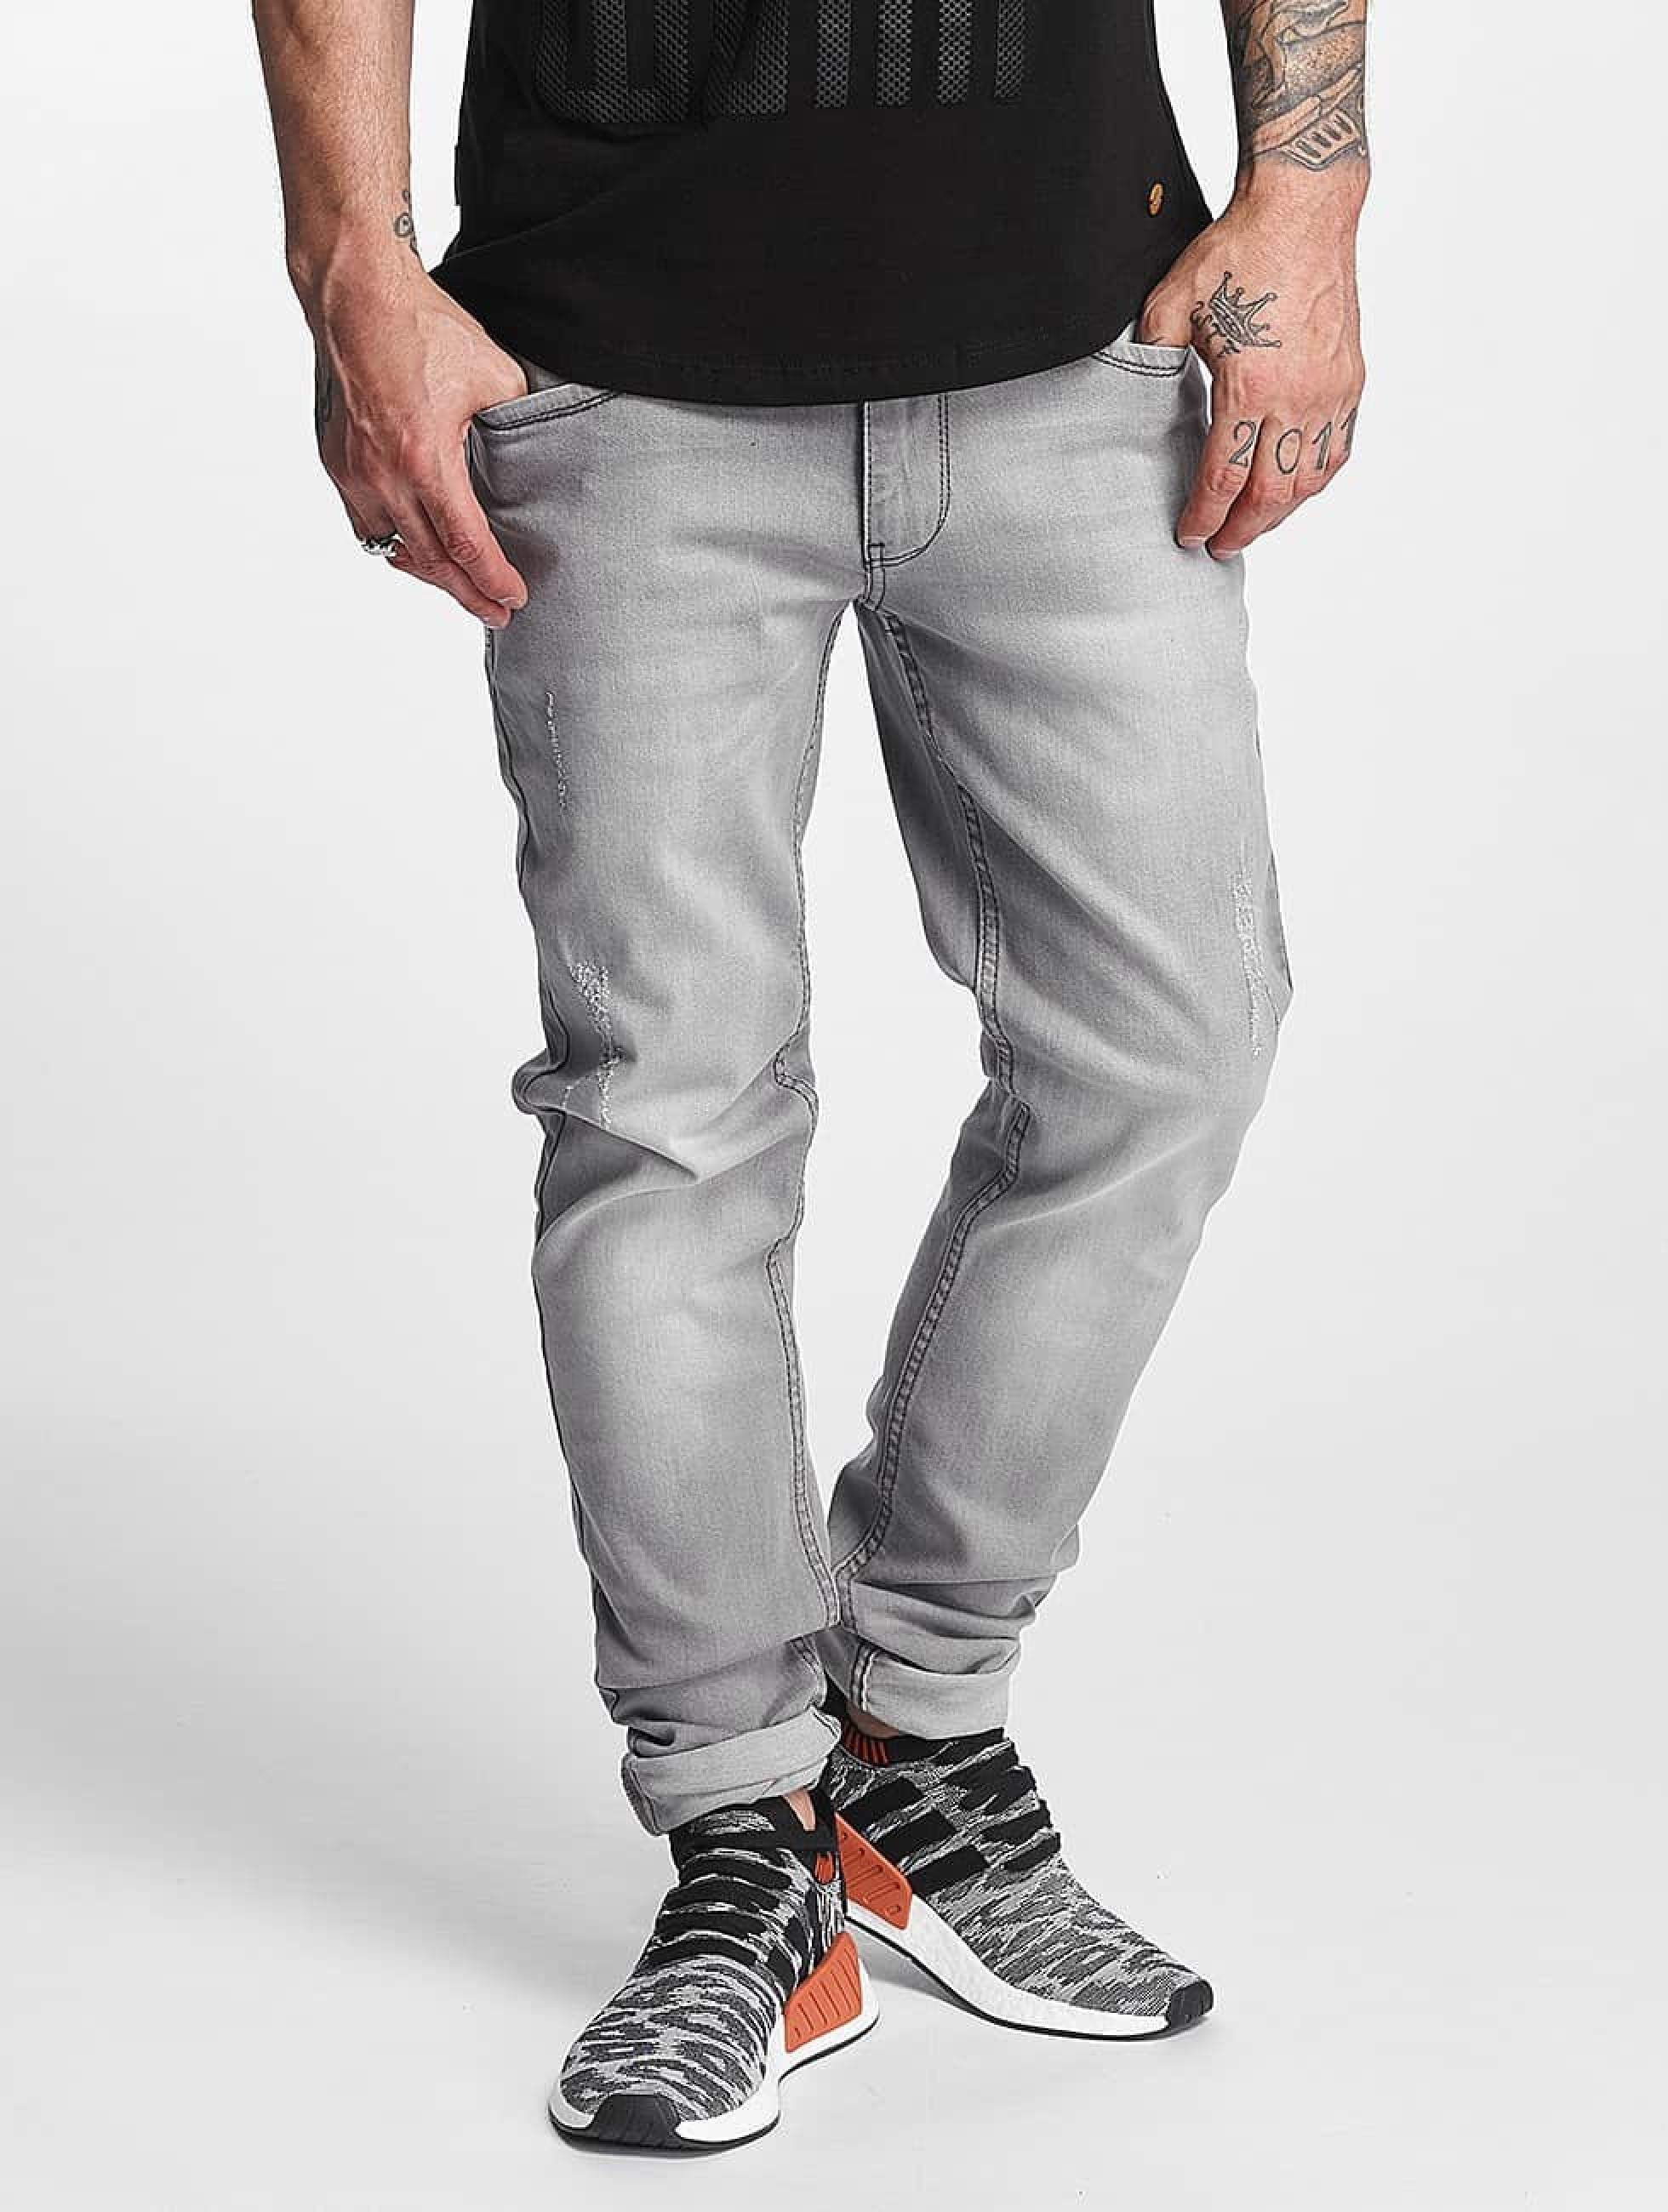 Rocawear / Straight Fit Jeans Pune in grey W 31